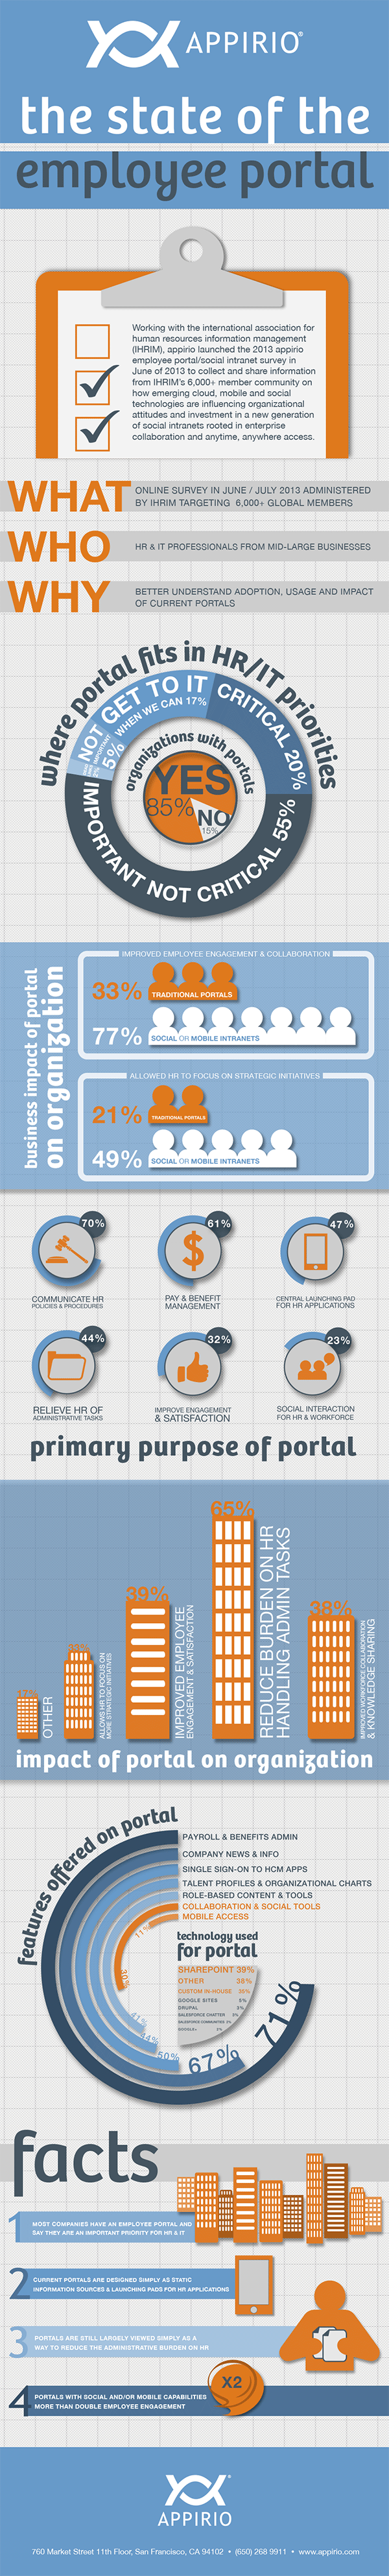 The State of the Employee Portal - by Appirio